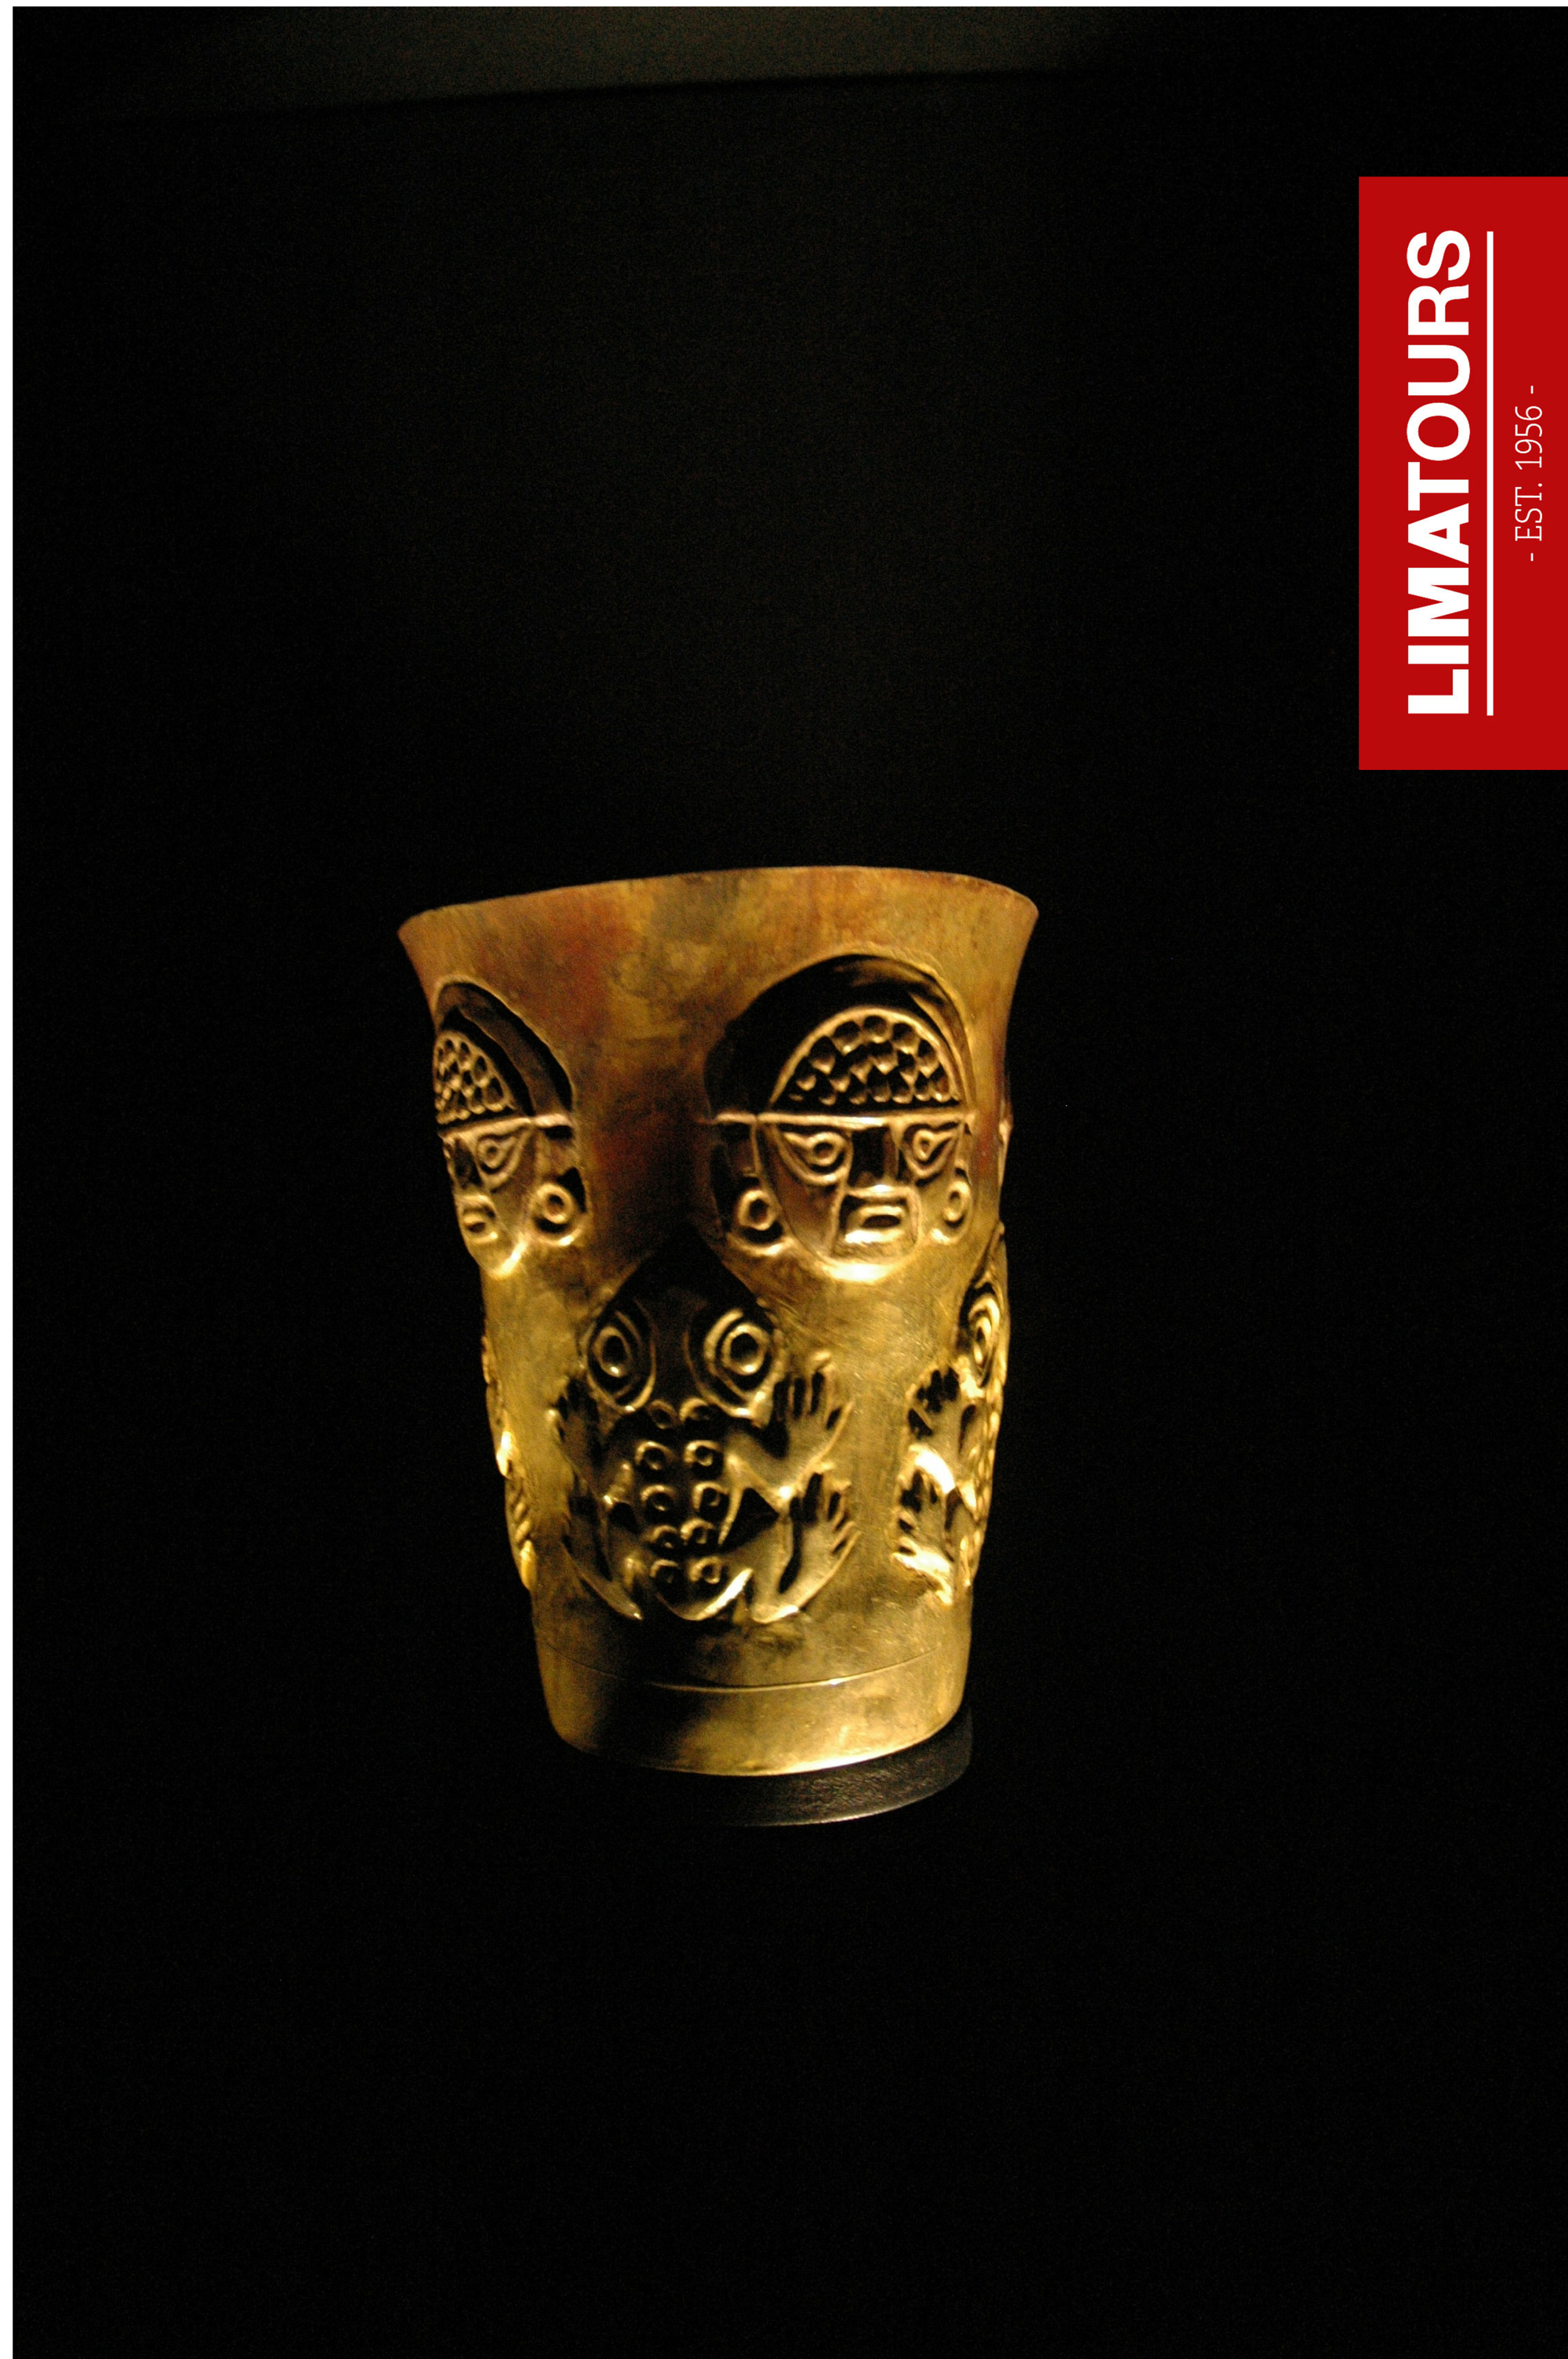 Pre-Inca glass of #gold found in the Gold #Museum #Lima #Peru #travel #legacy #archaeology